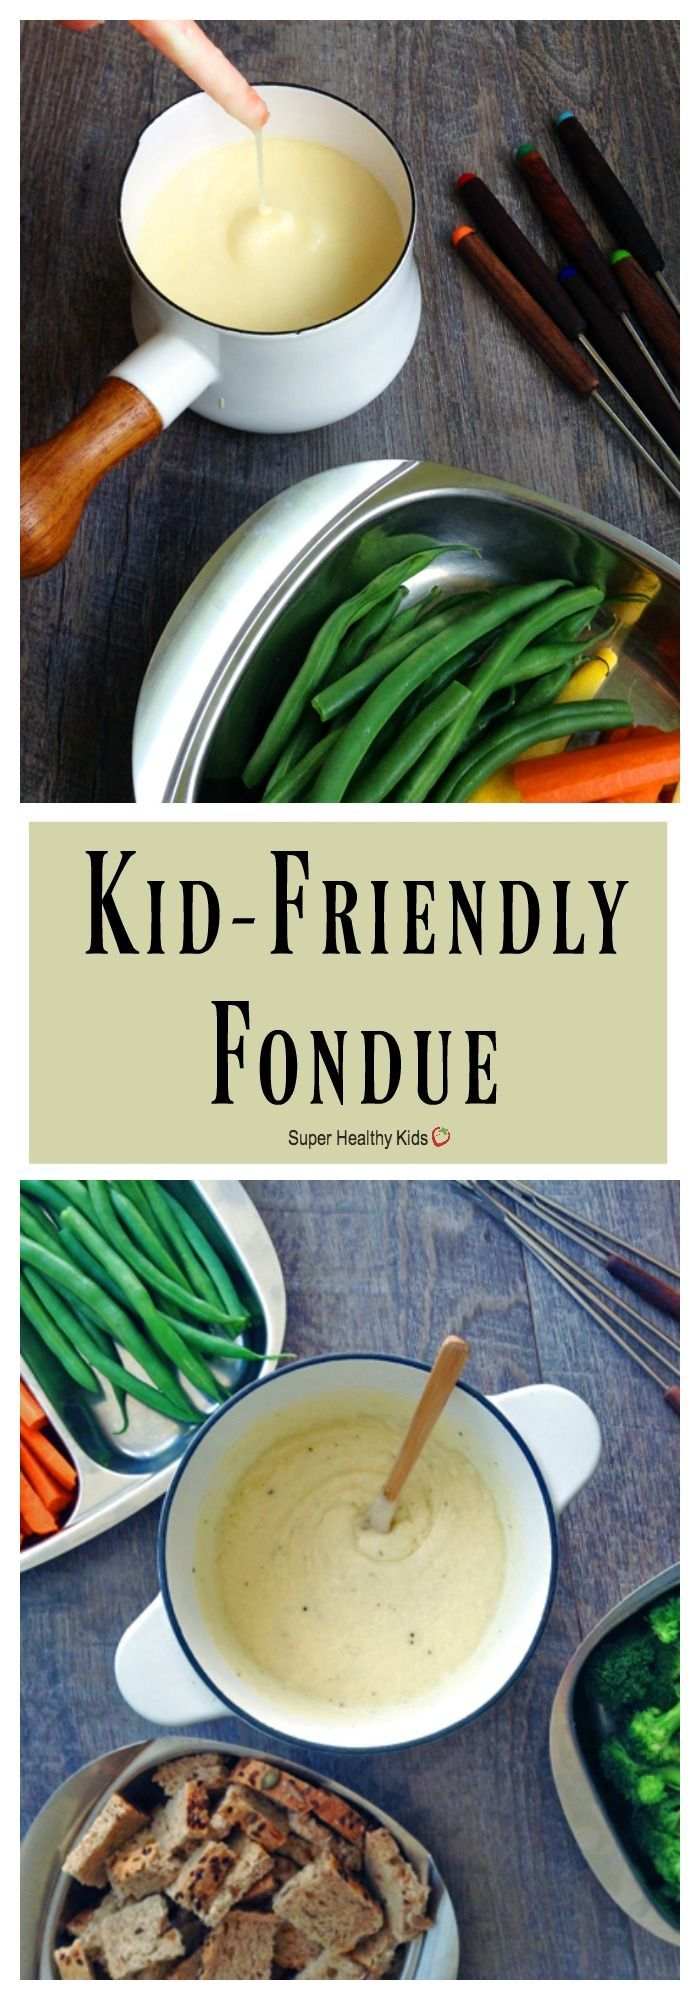 FOOD - Kid-Friendly Fondue. A few simple changes turn classic Swiss fondue into a kid-friendly, fun family dinner! http://www.superhealthykids.com/kid-friendly-fondue/